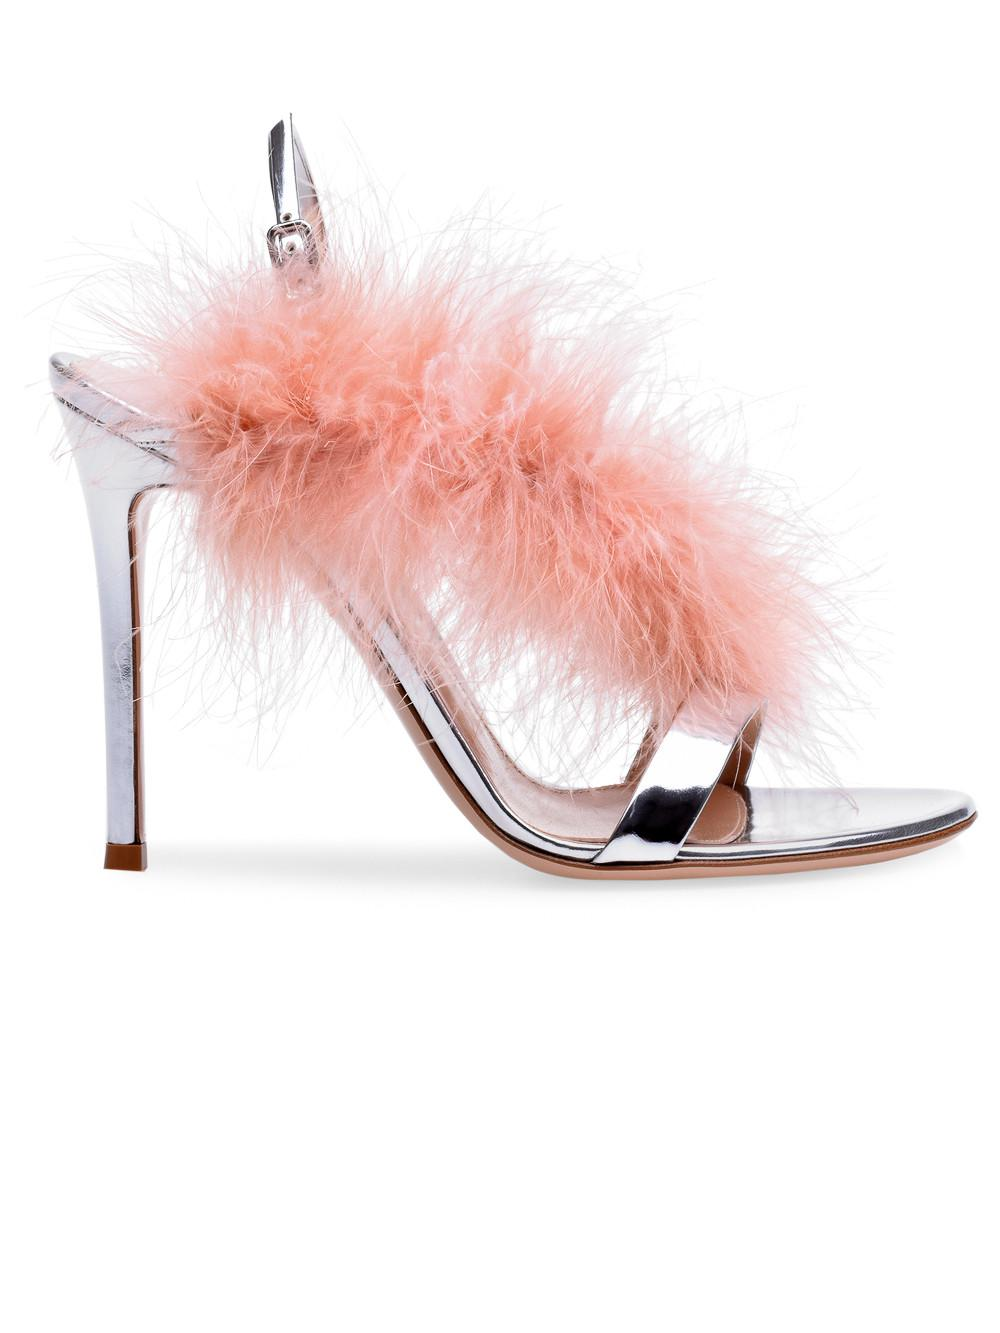 86a1b3a52ad Lyst - Gianvito Rossi Metallic Feather Sandals in Pink